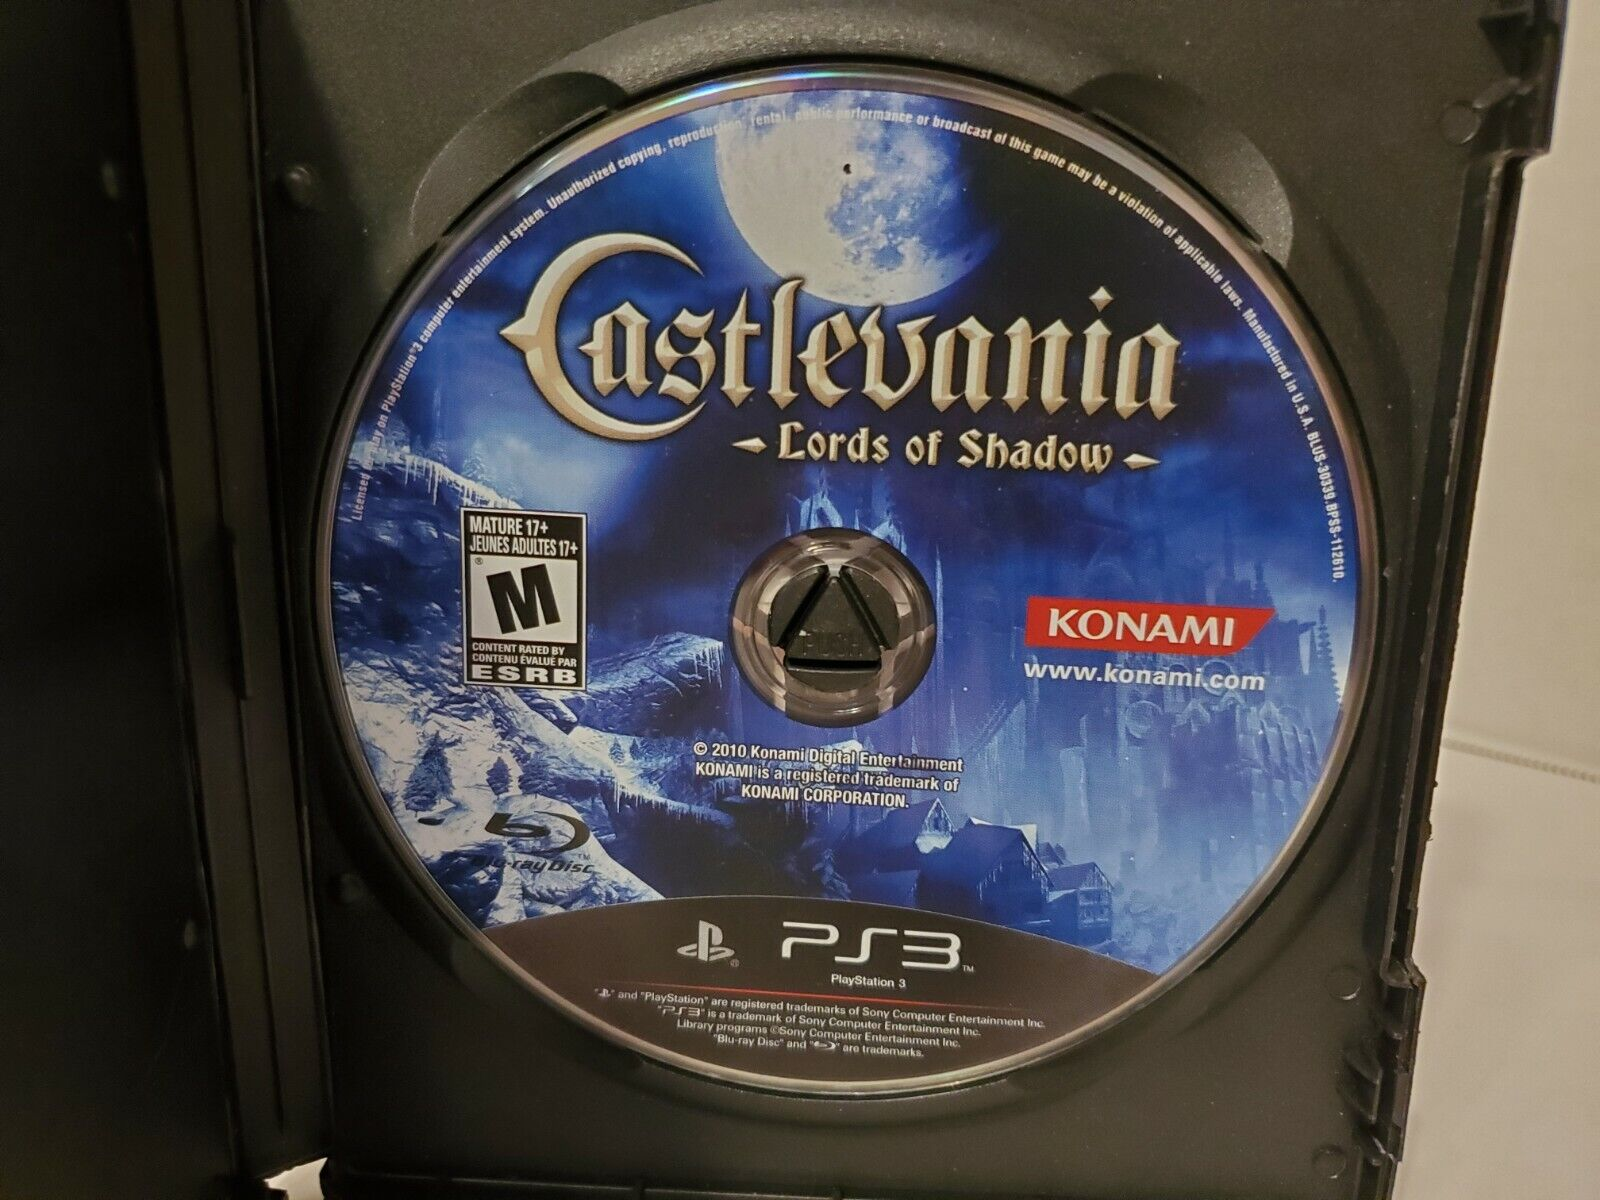 Castlevania Lords Of Shadow Sony PlayStation 3, 2010 - DISC ONLY - FREE SHIP - $10.49